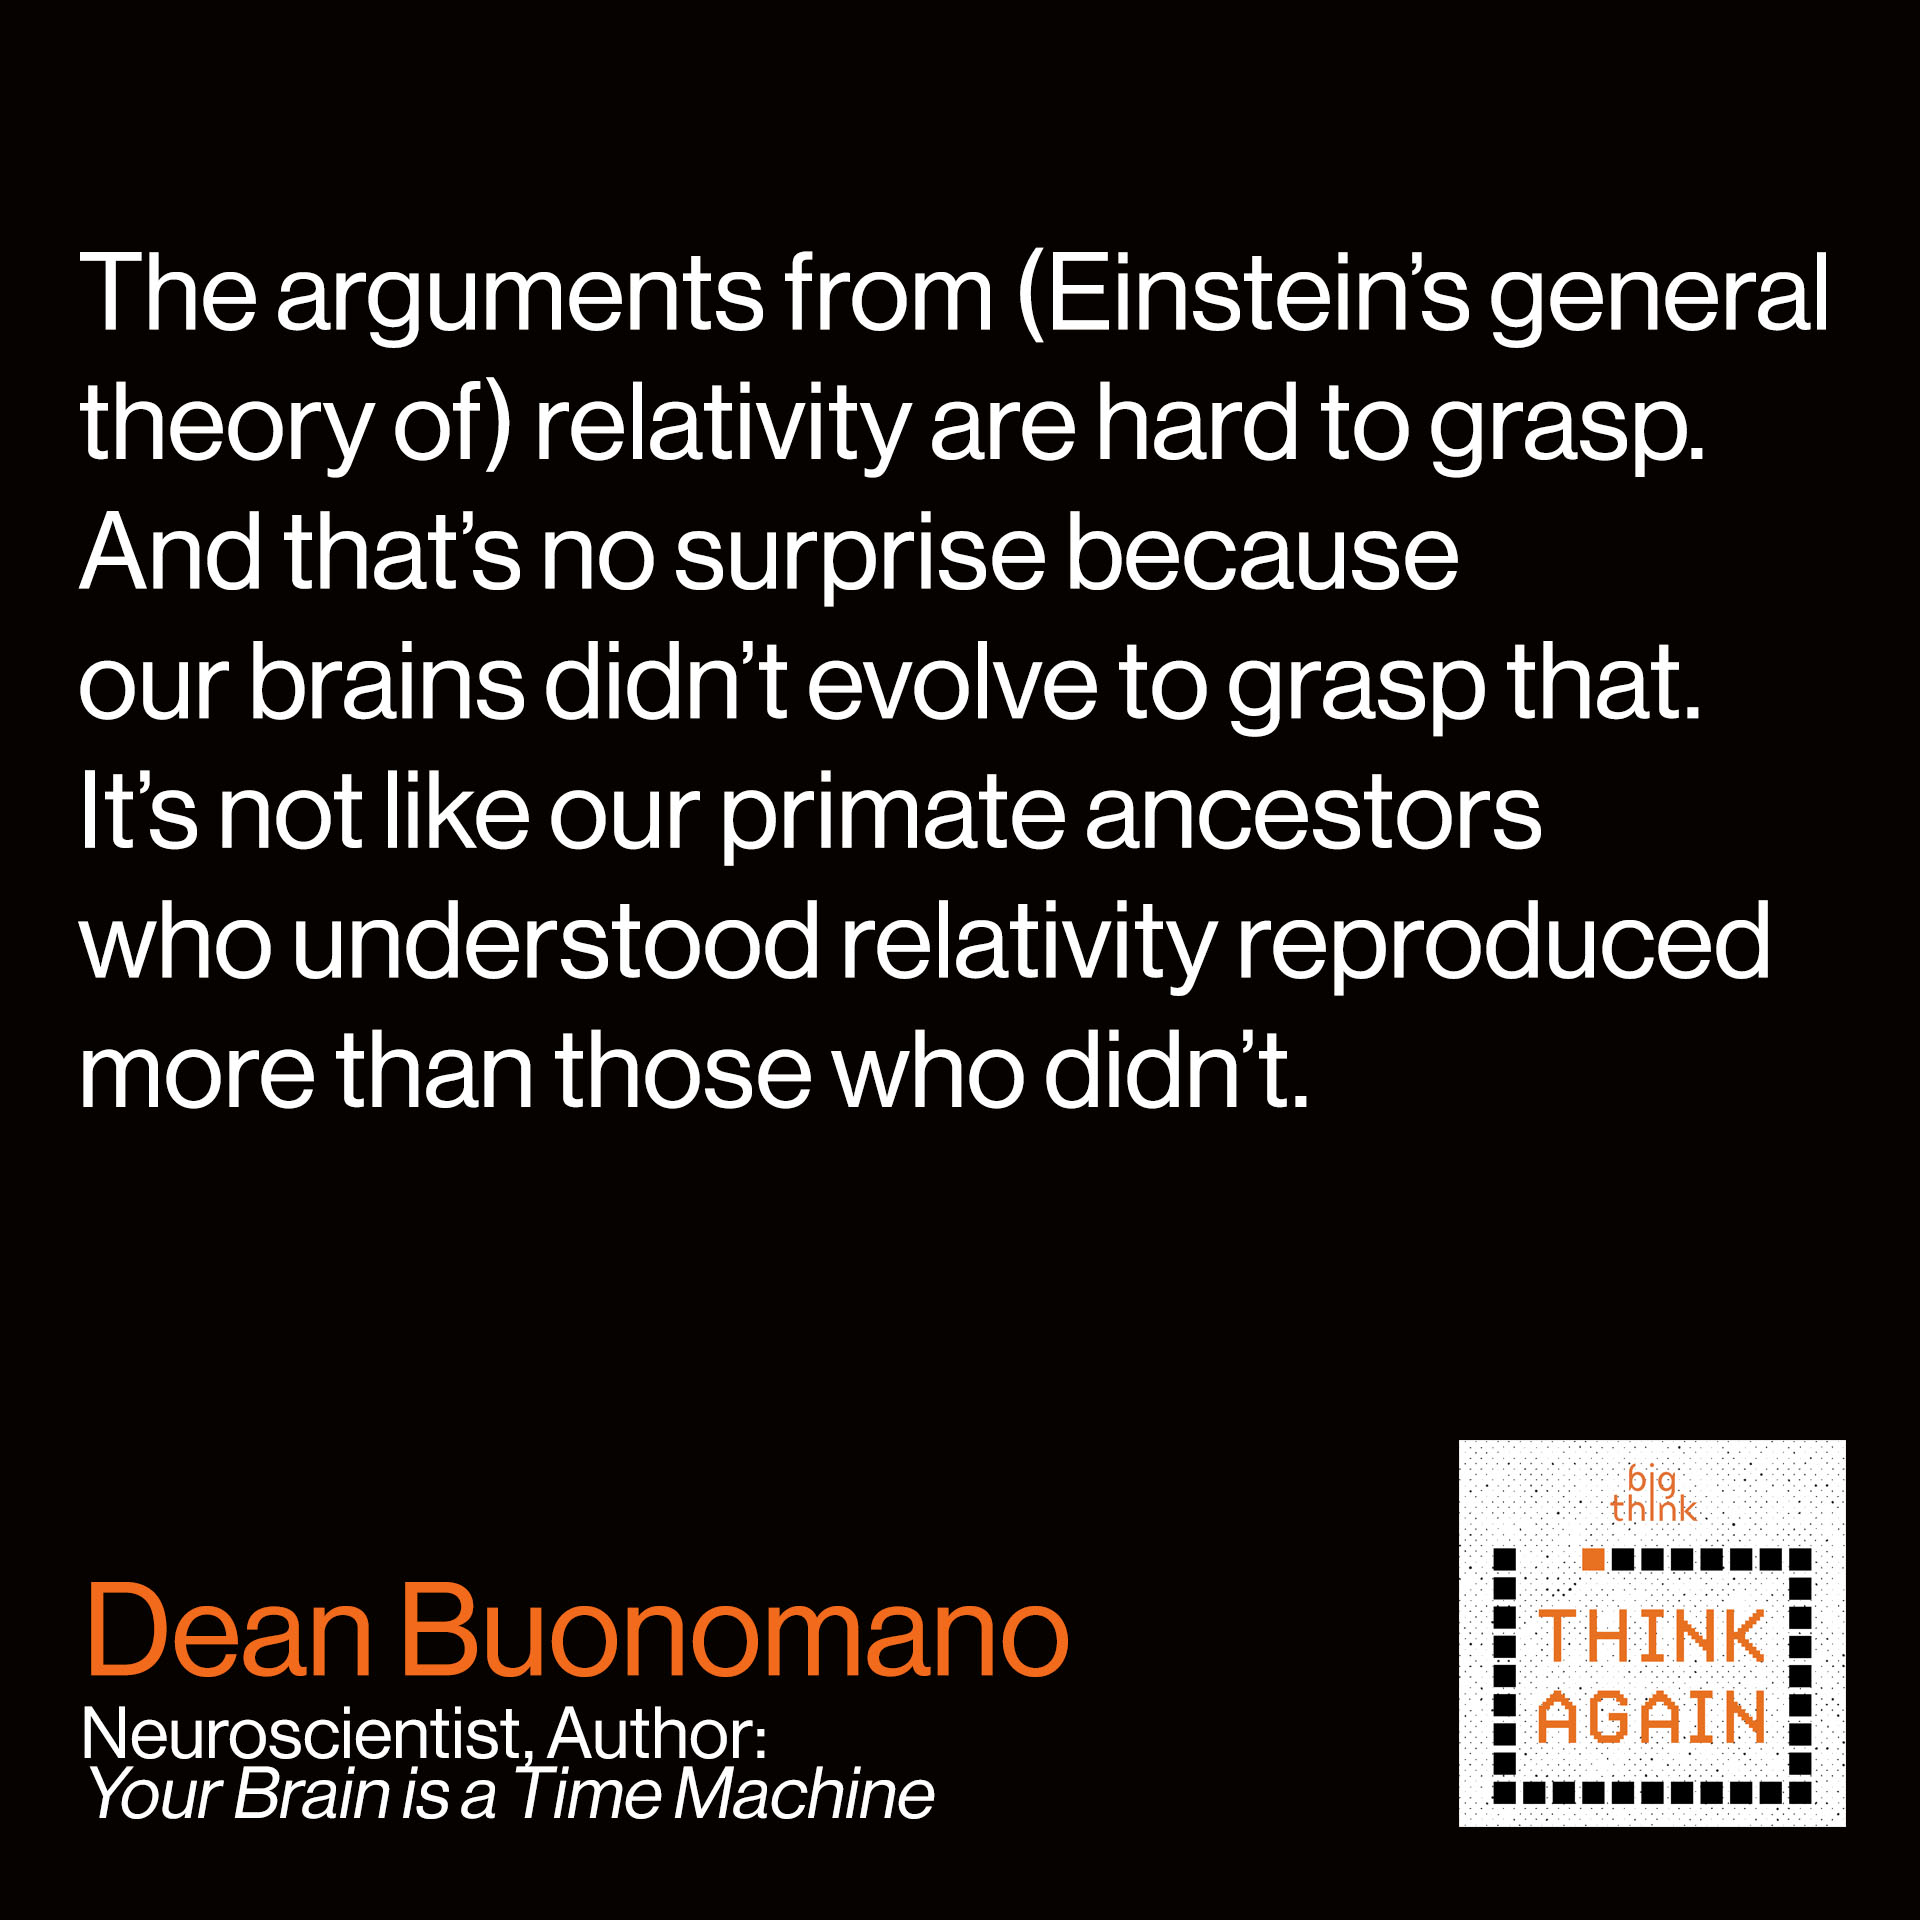 Dean Buonomano Quote from this podcast: The arguments from (Einstein's general theory of) relativity  are hard to grasp. And that's no surprise because our brains  didn't evolve to grasp that. It's not like our primate ancestors  who understood relativity reproduced more than those who didn't.